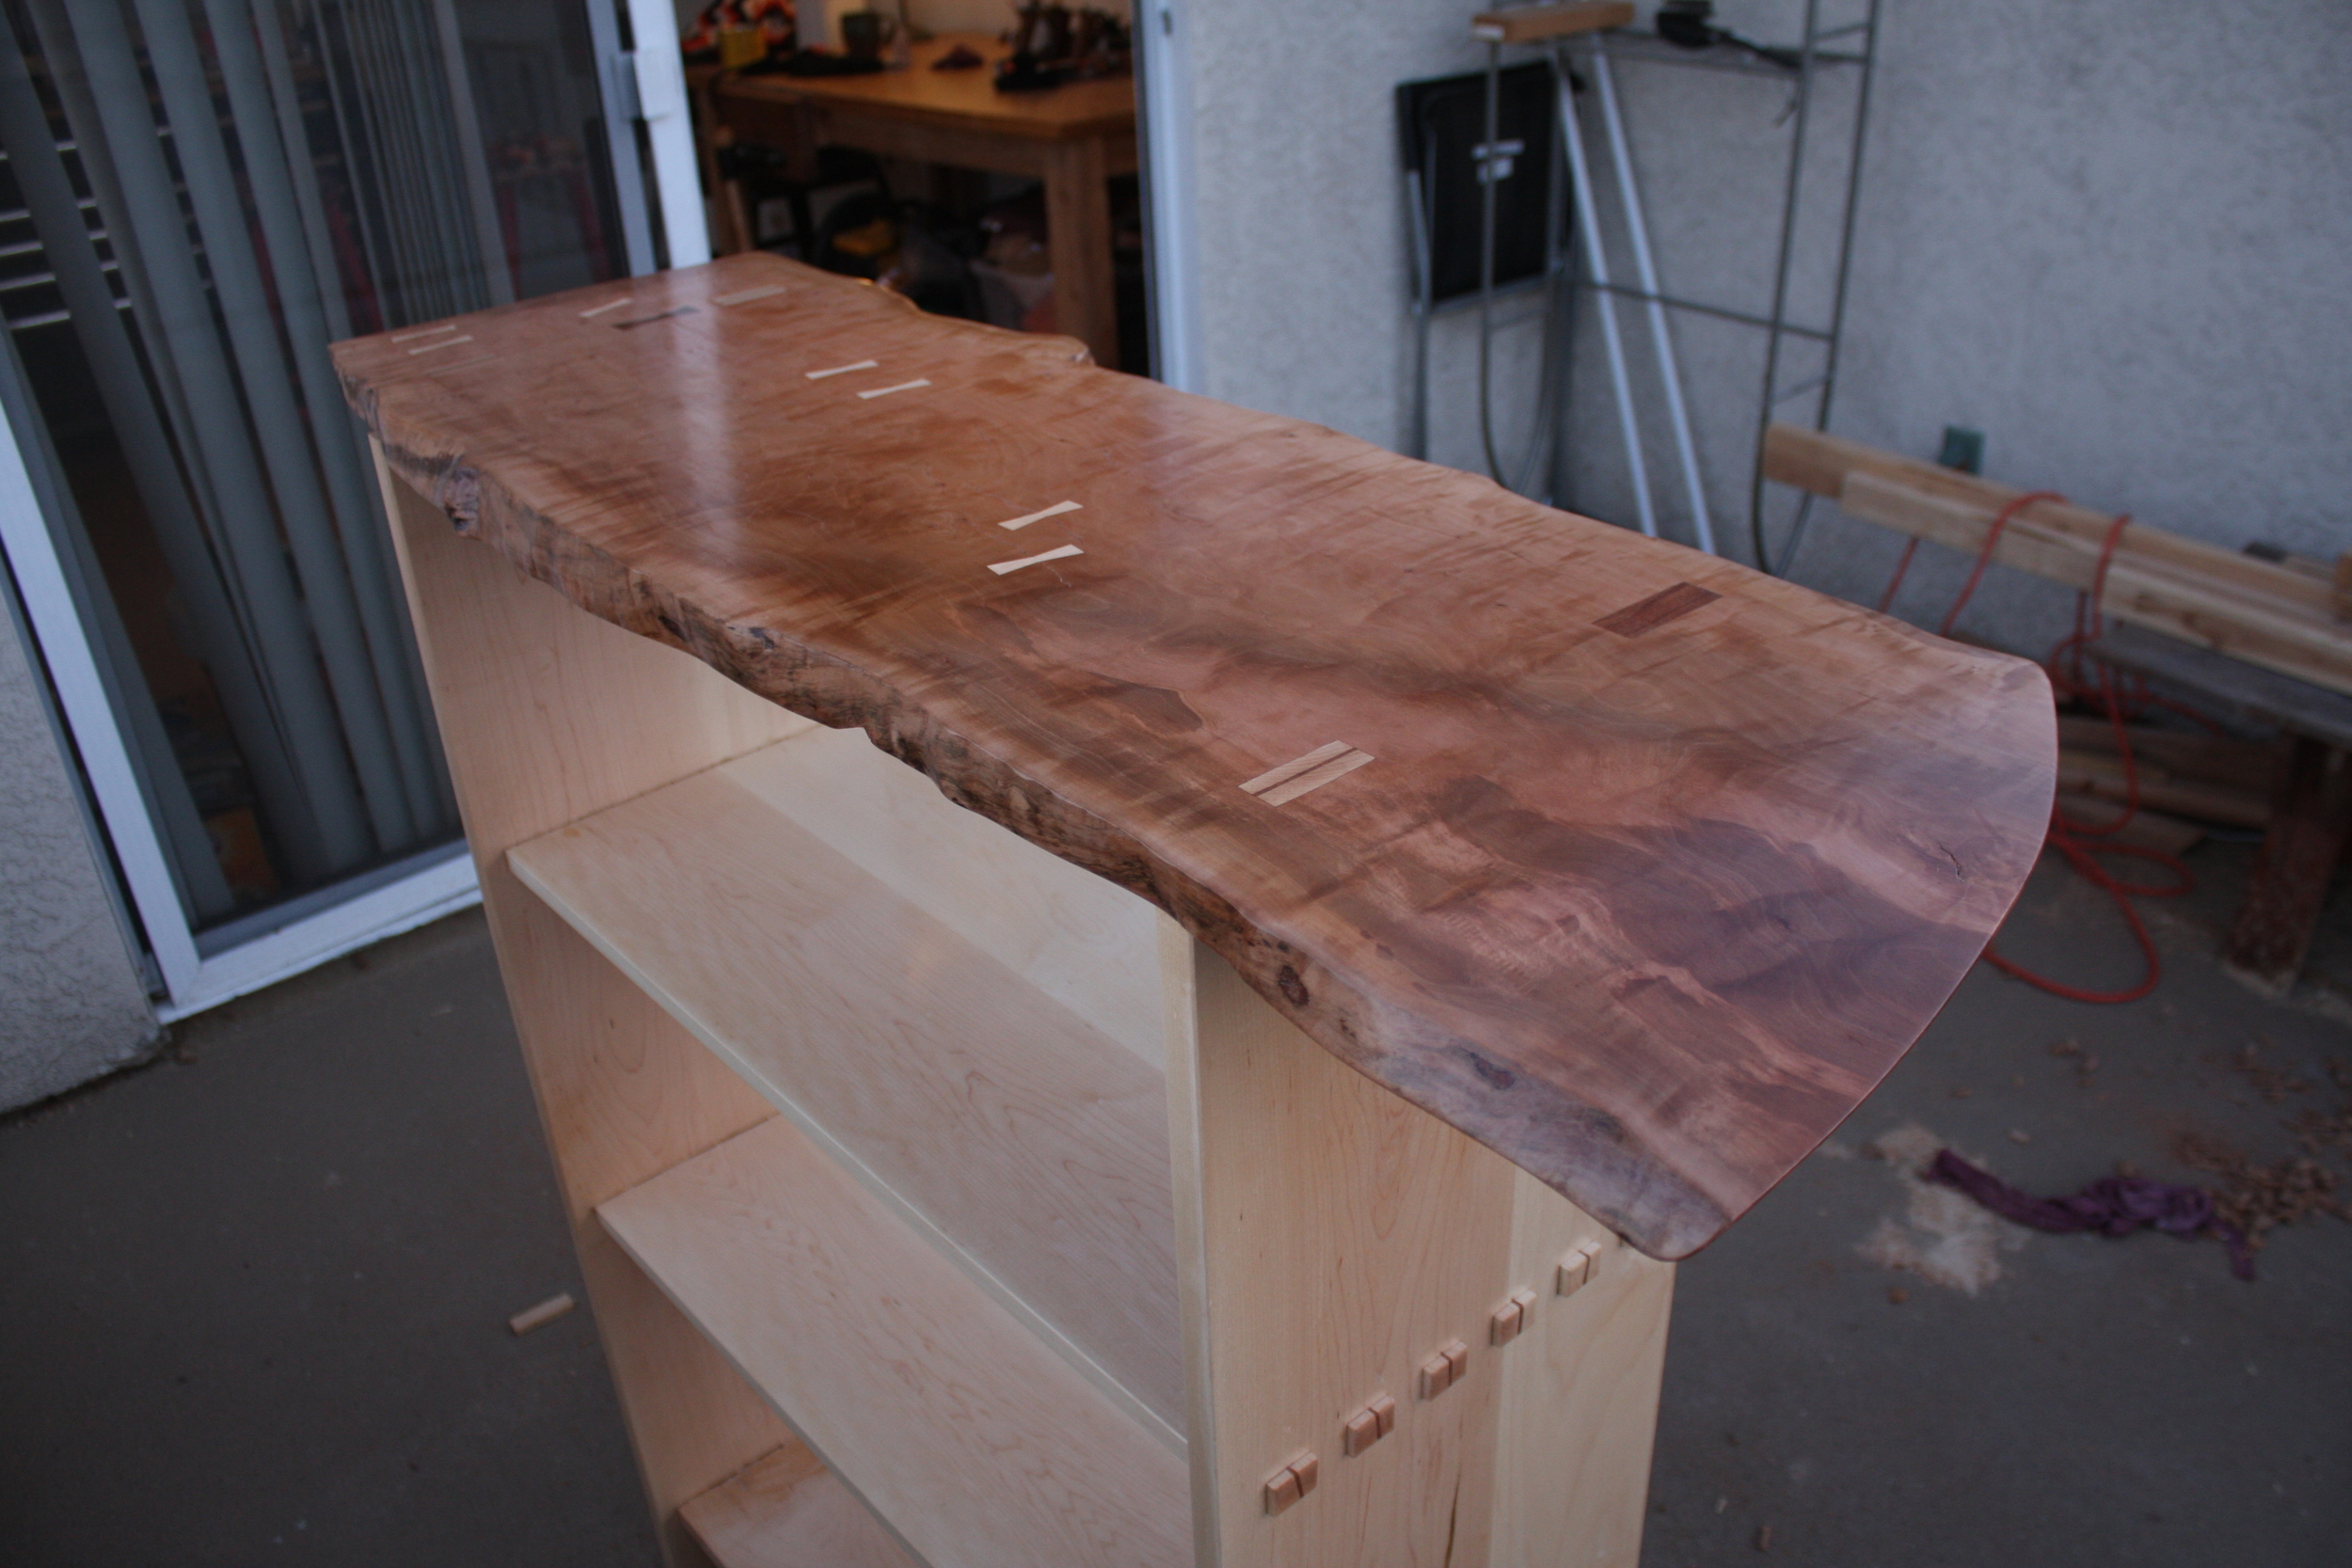 All of the different joints are visible in this picture: dovetail keys to the left, through mortise and tenons (wedged to the right). That rectangular patch is a piece of koa placed over a wedged mortise and tenon joint.